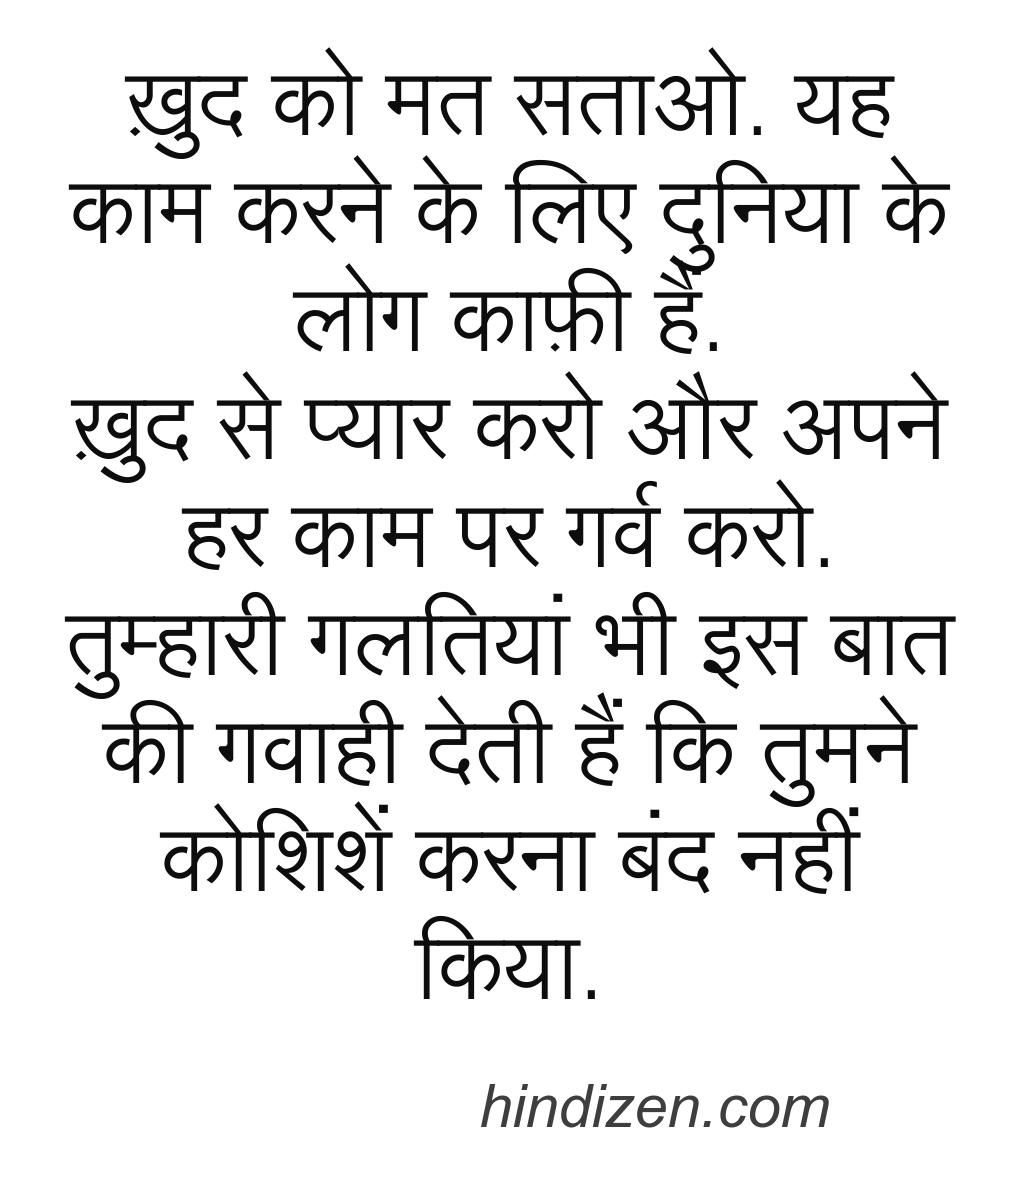 Pin by nehaal on hindi sayri pinterest hindi quotes thoughts true words malvernweather Images